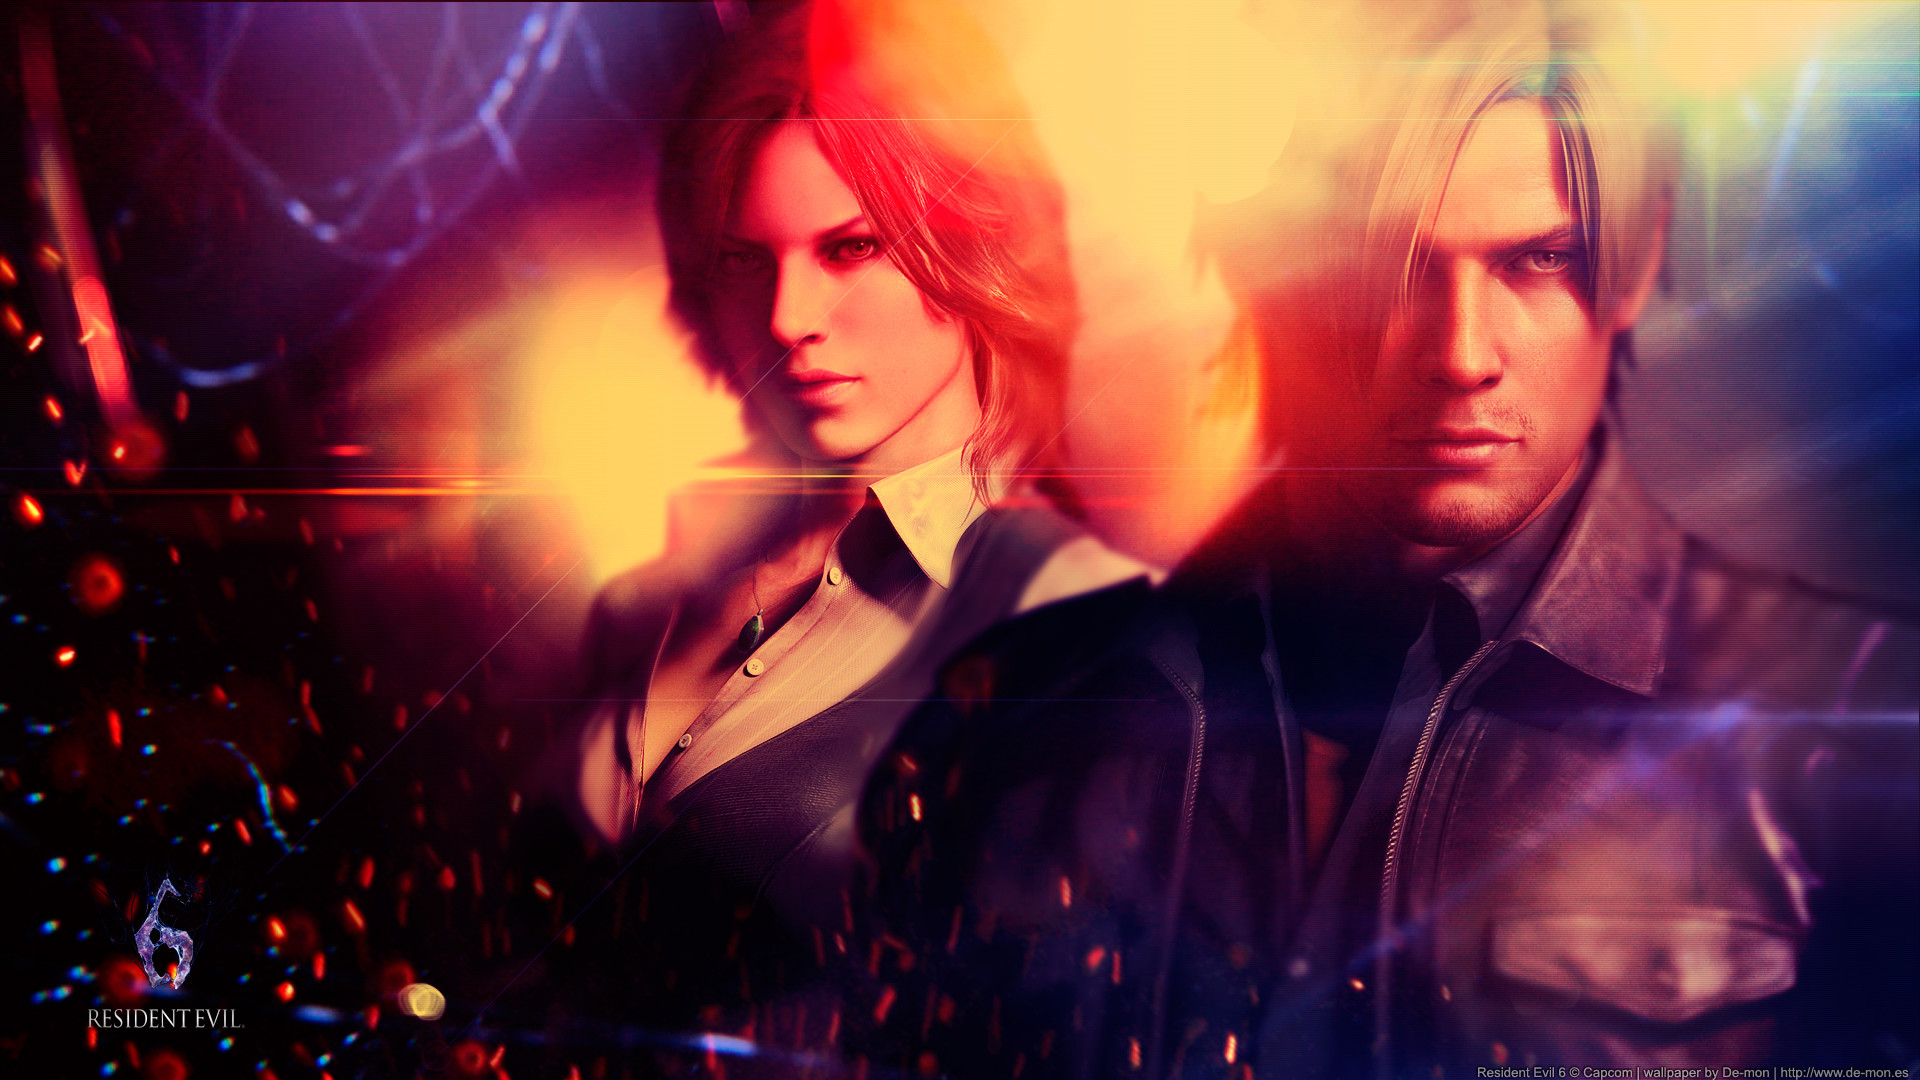 Leon S Kennedy Wallpaper (78+ images)